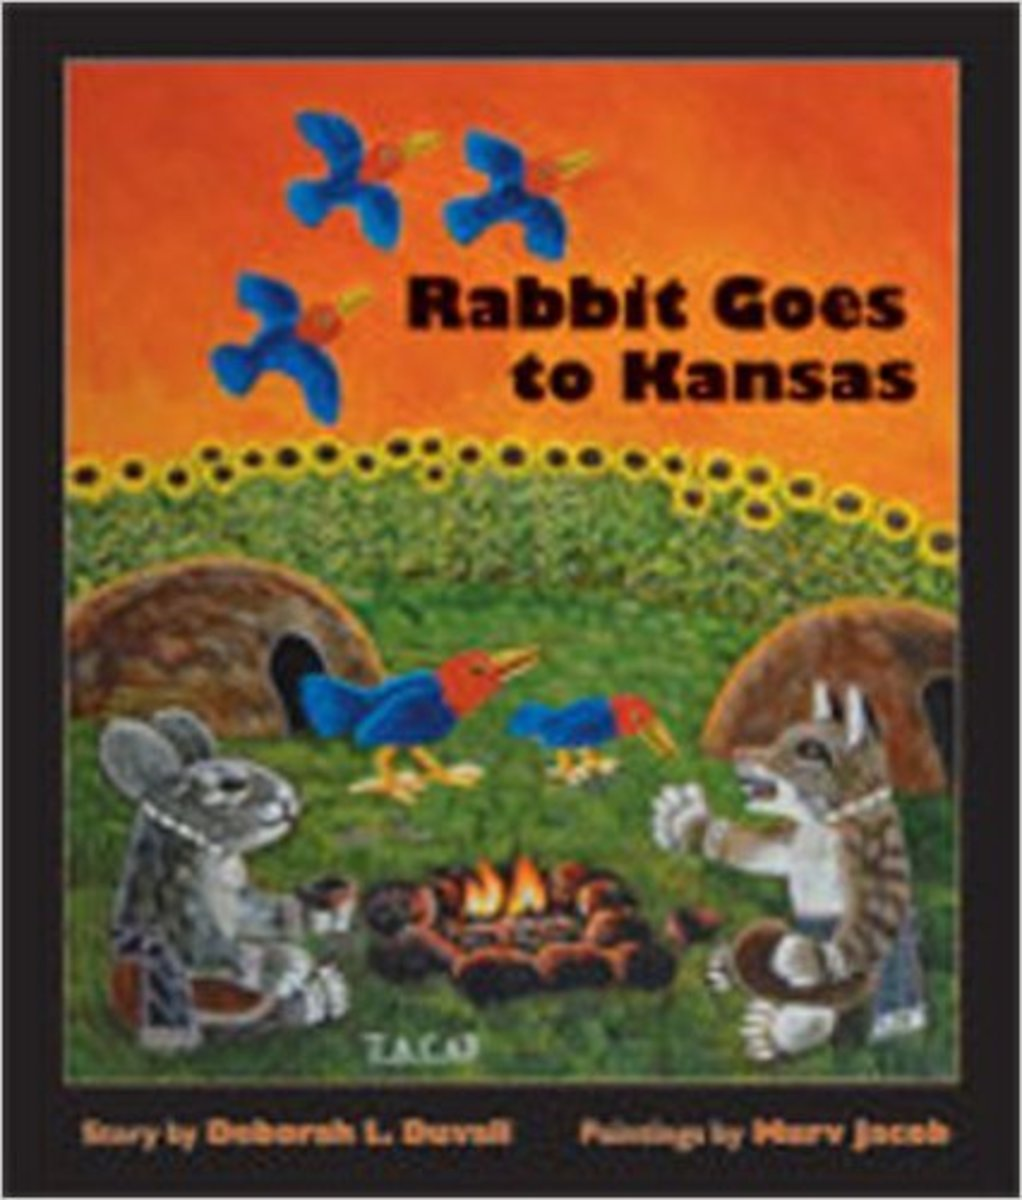 Rabbit Goes to Kansas by Deborah L. Duvall